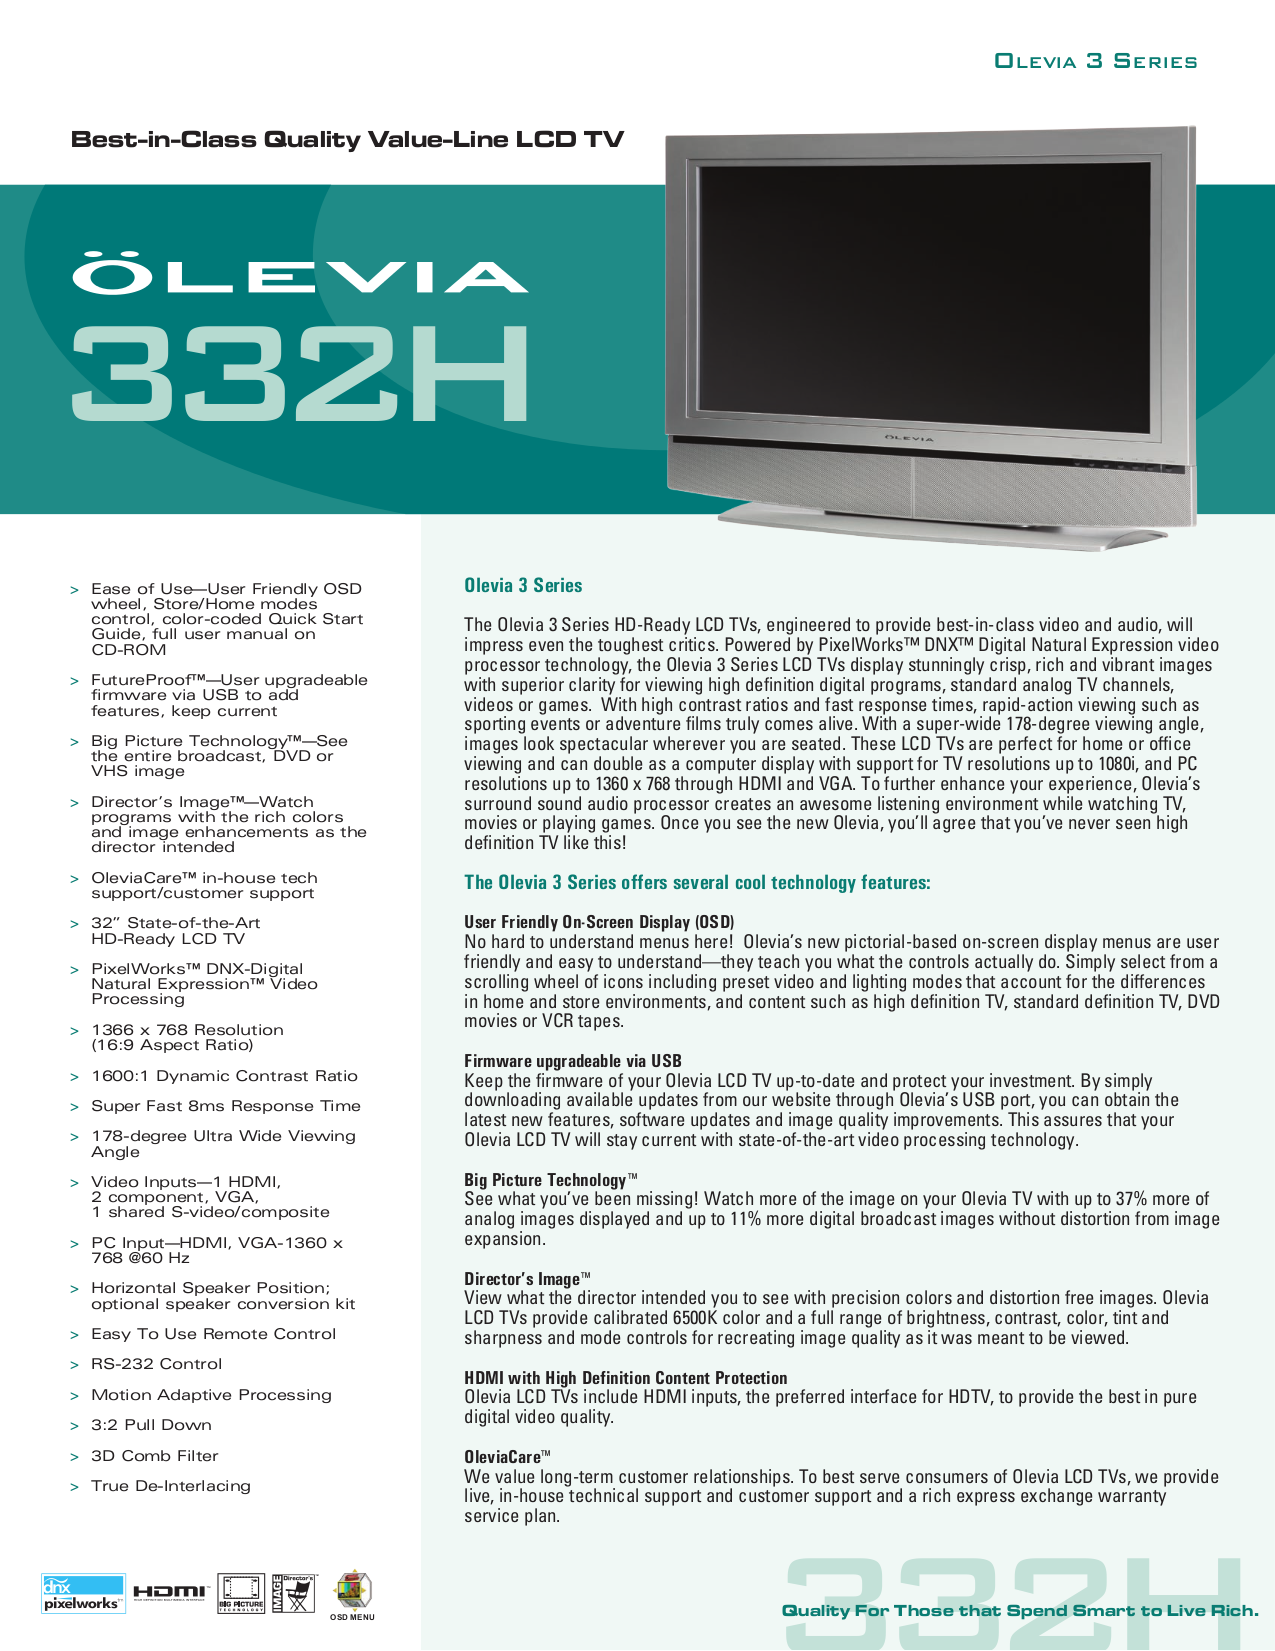 pdf for Olevia Monitor 332H manual